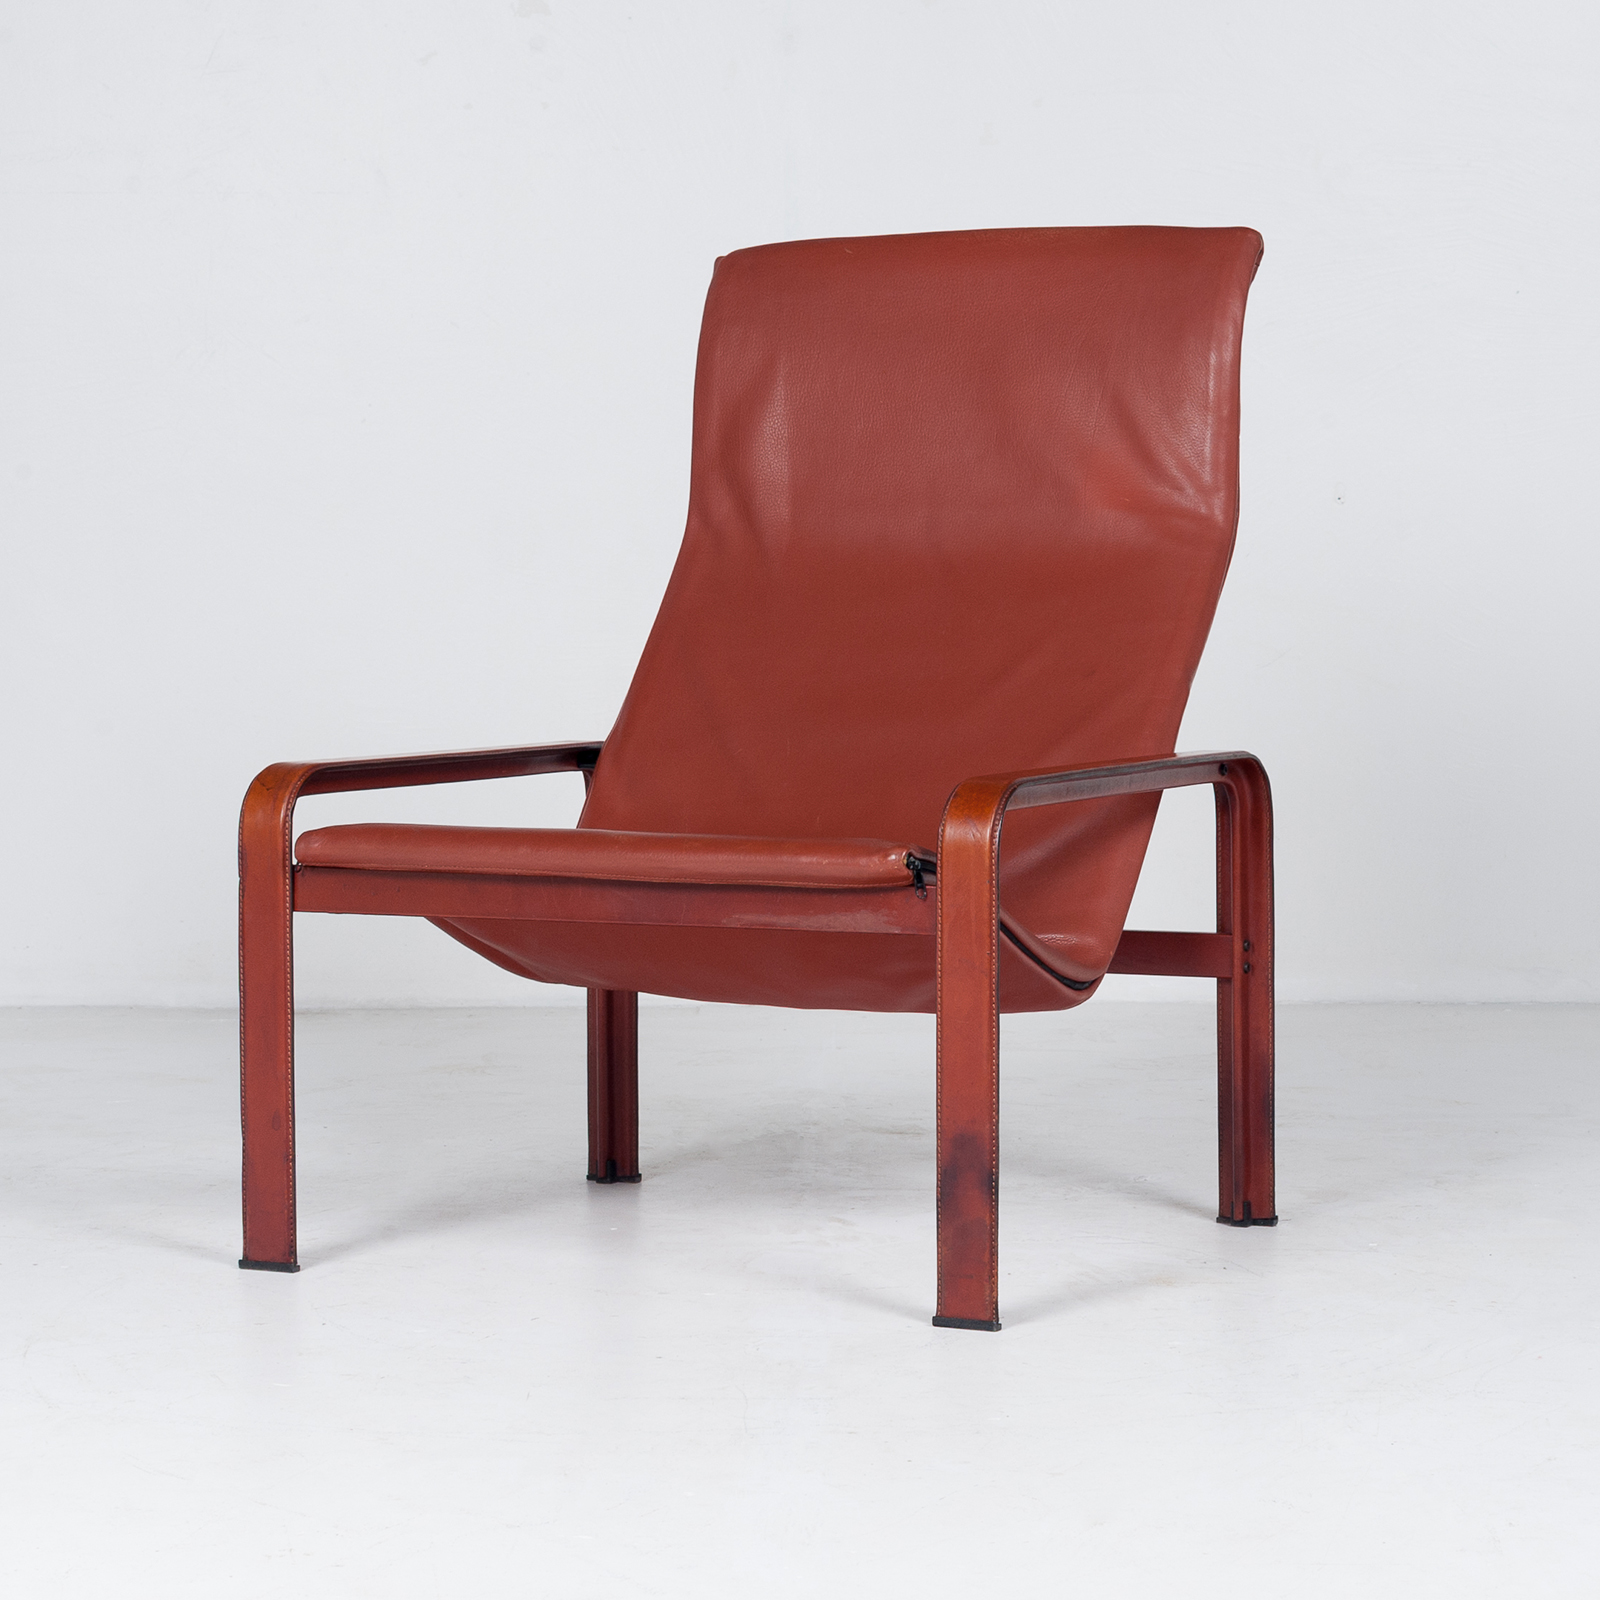 Armchair In Tan Leather By Matteo Grassi (mt Ac 194 128 It) 952